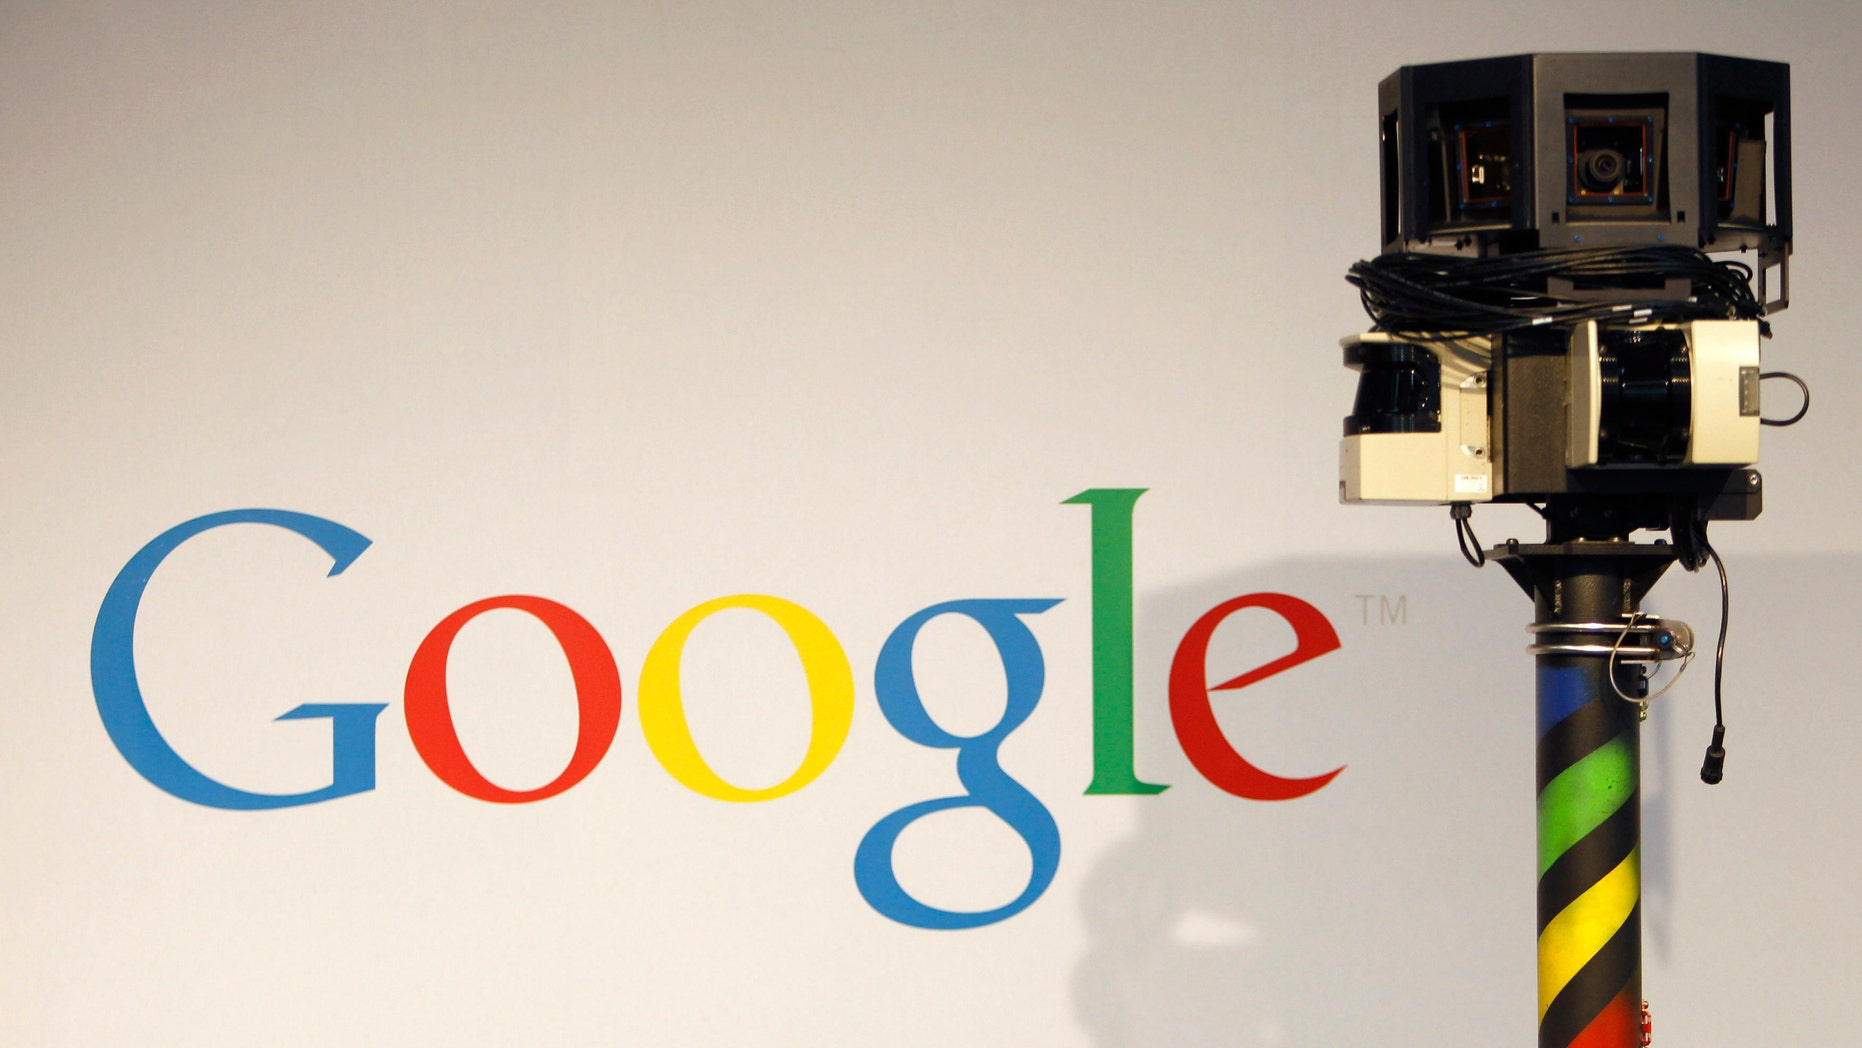 Google is my lawyer: How a Canadian man used Street View to